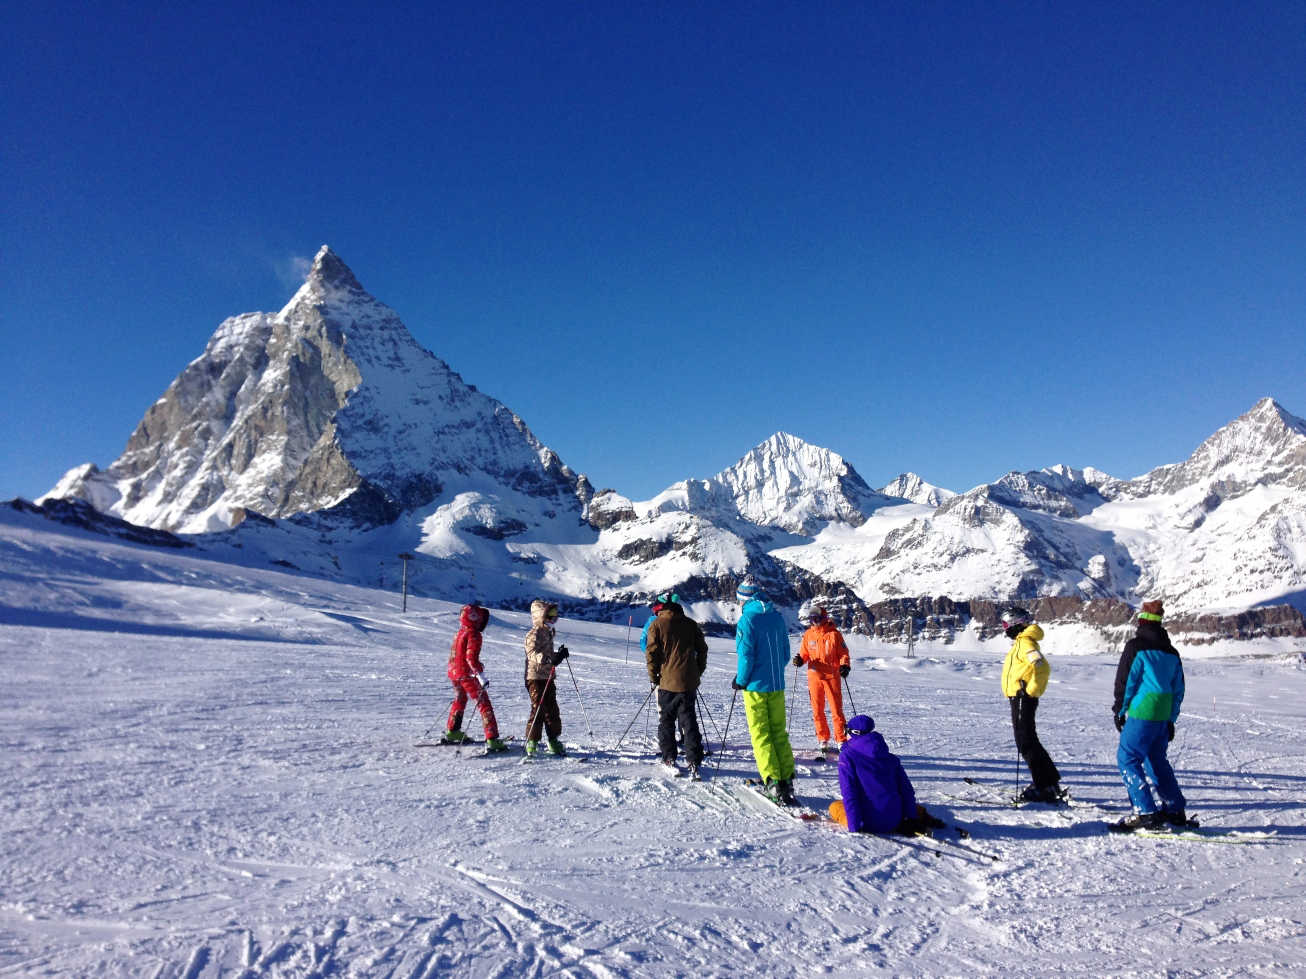 When skiing in Zermatt, skiers can visit both the Swiss and the Italien ski resorts, which are connected